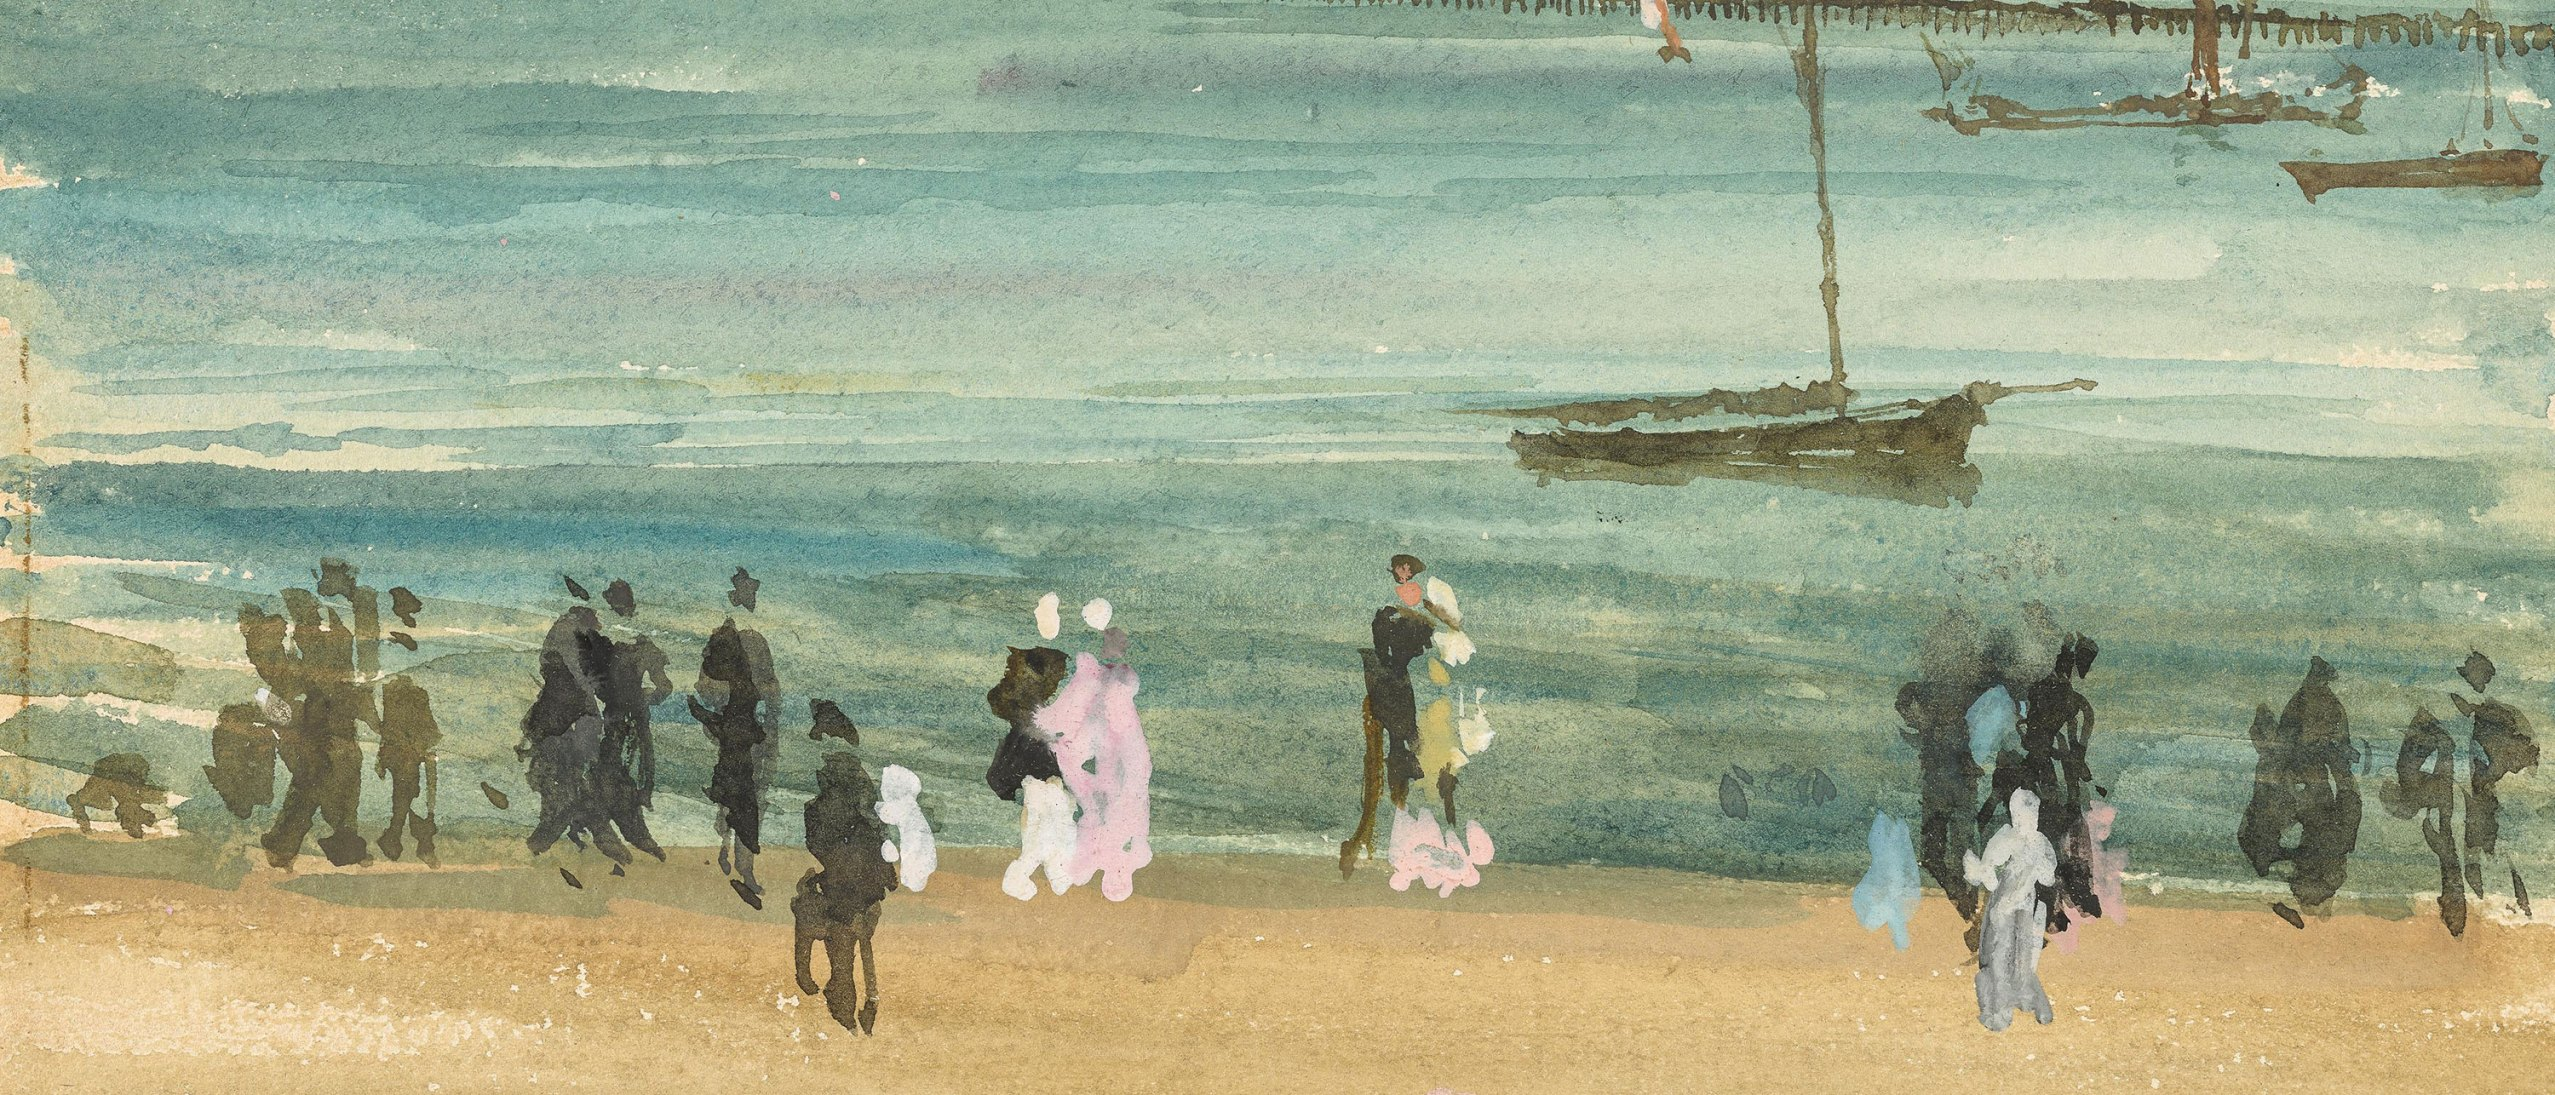 detail from Southend Pier painting by James McNeill Whistler. gestural figures stand in front of a moody body of water with sailboats indicated in a few simple strokes